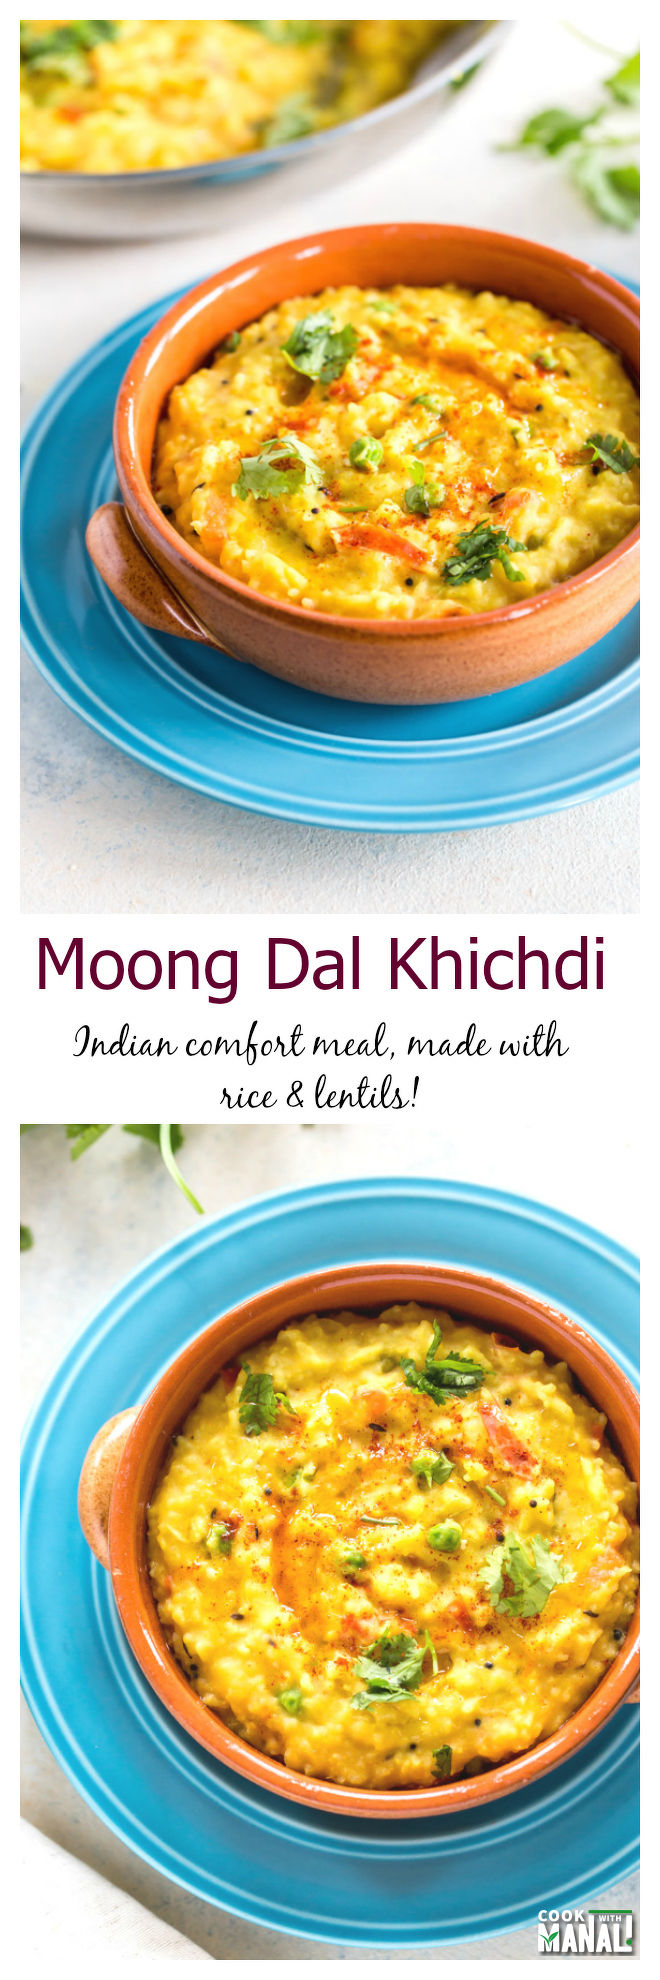 Moong Dal Khichdi Collage